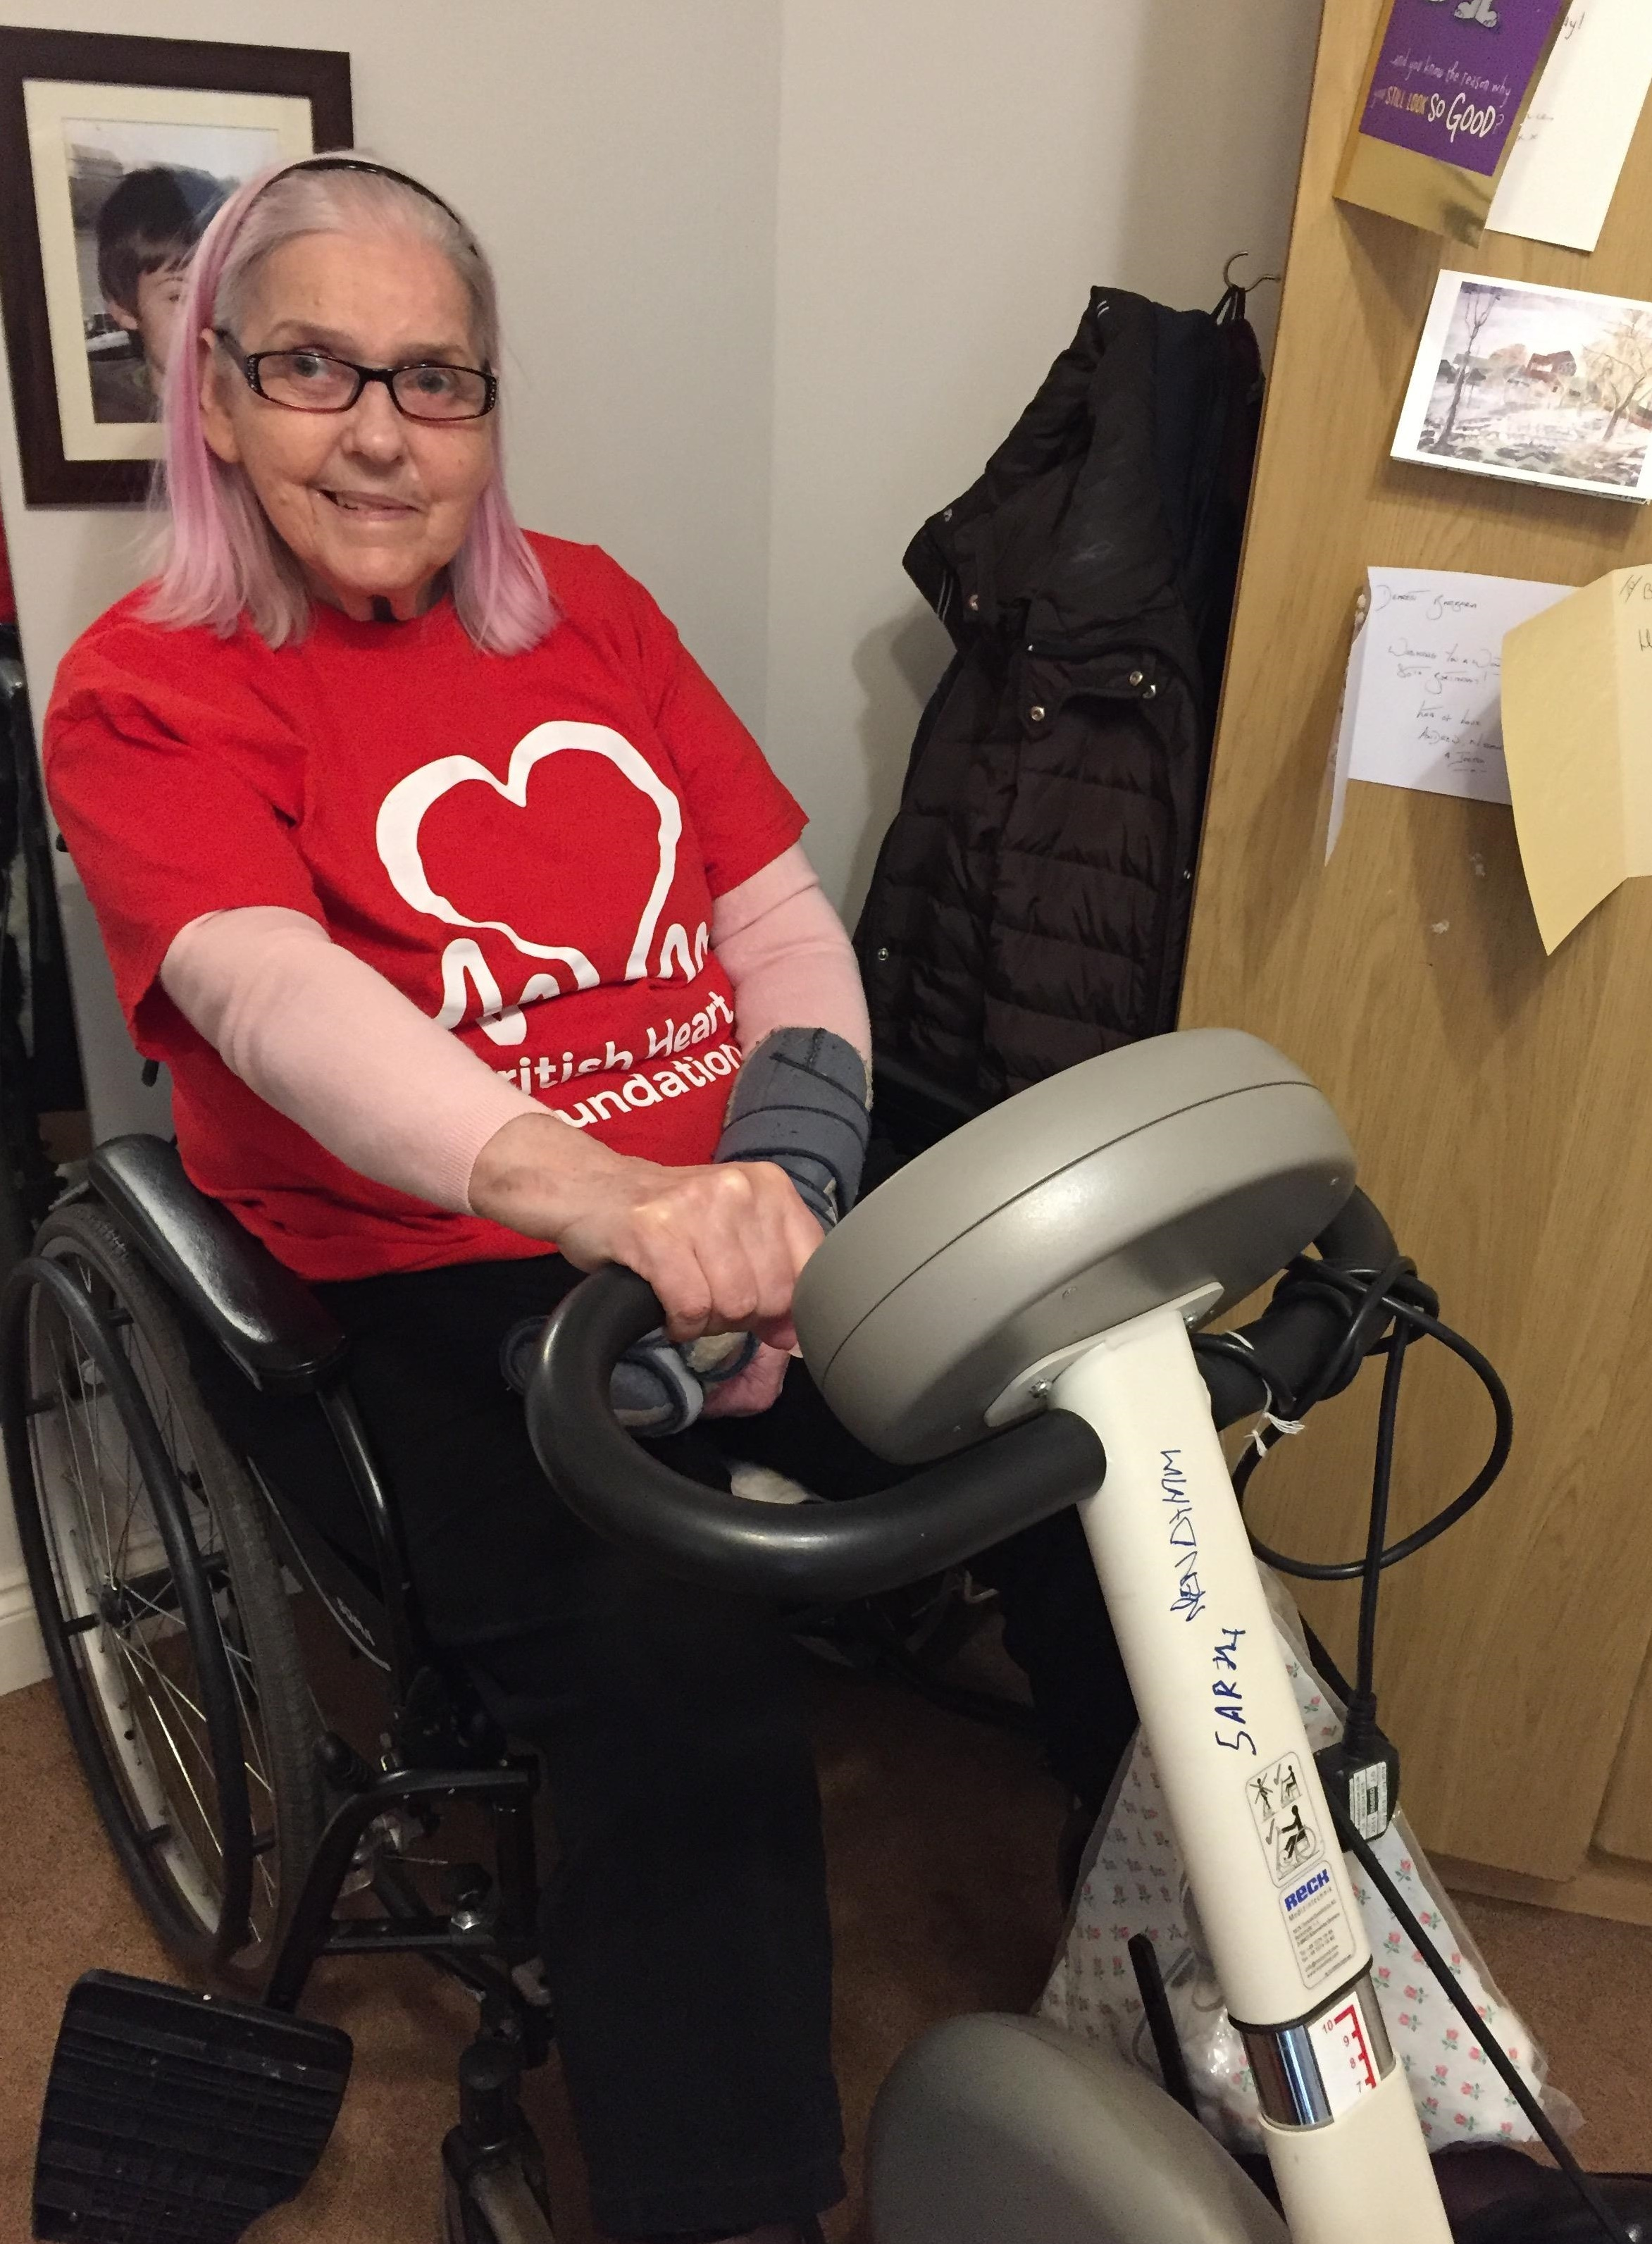 Barbara Small who is fundraising for British Heart Foundation